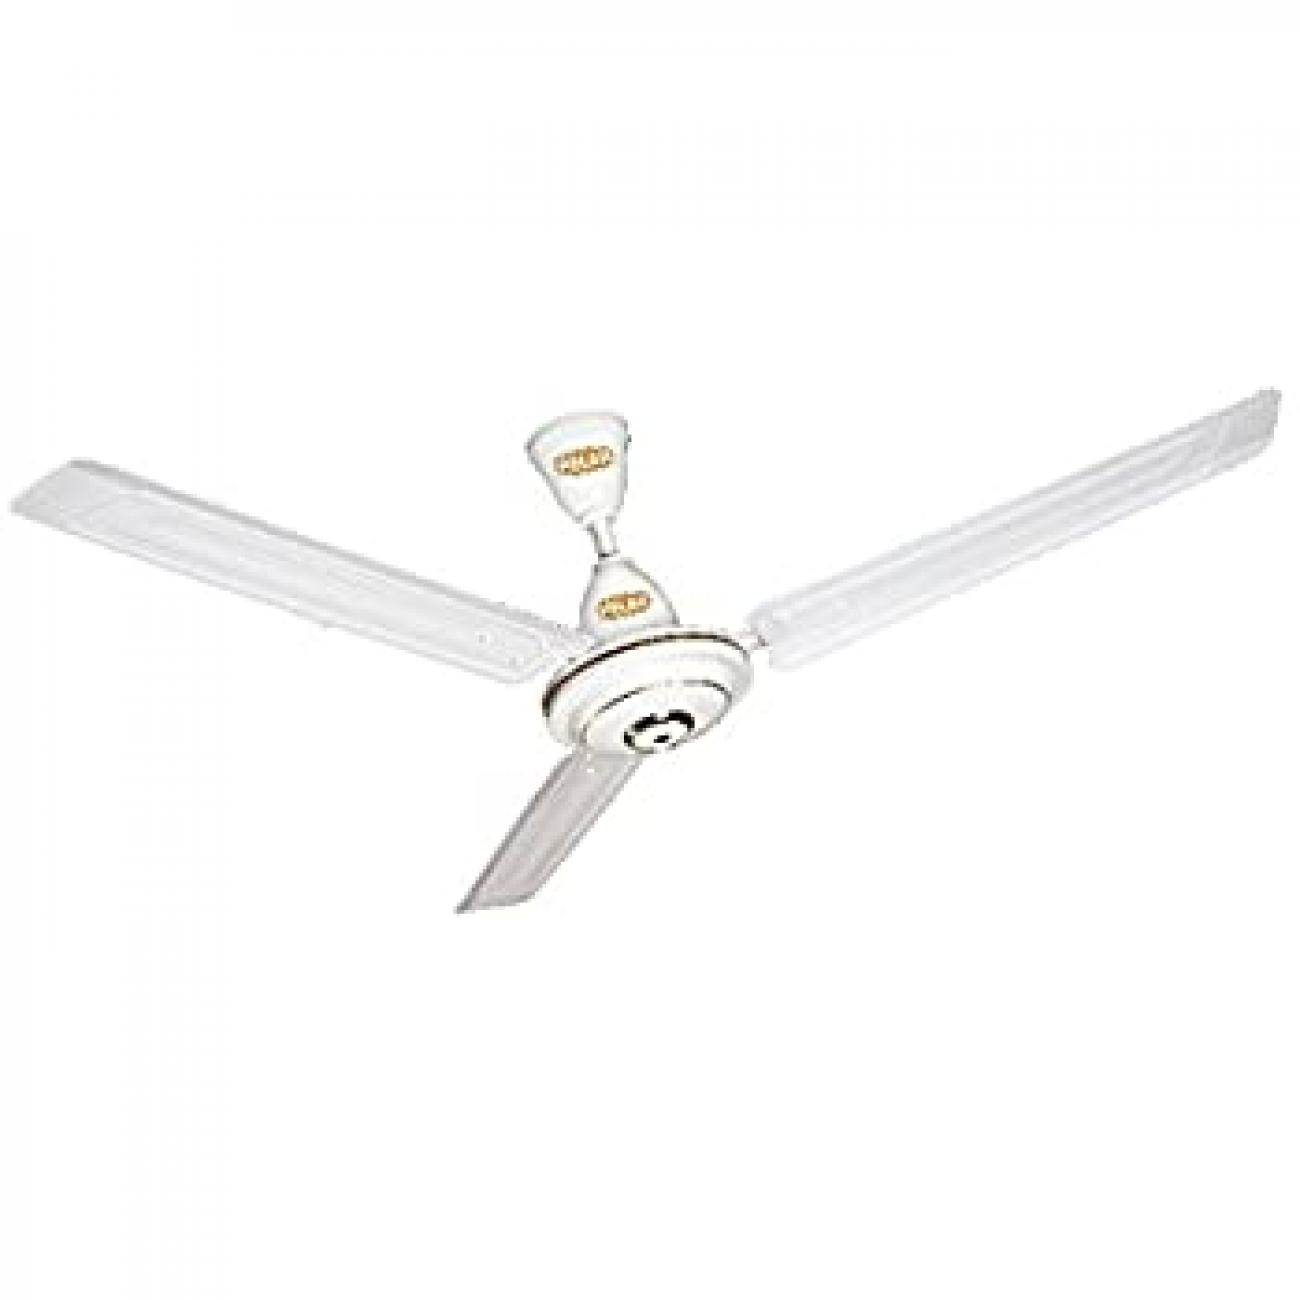 Megamite Electric Ceiling Fan .